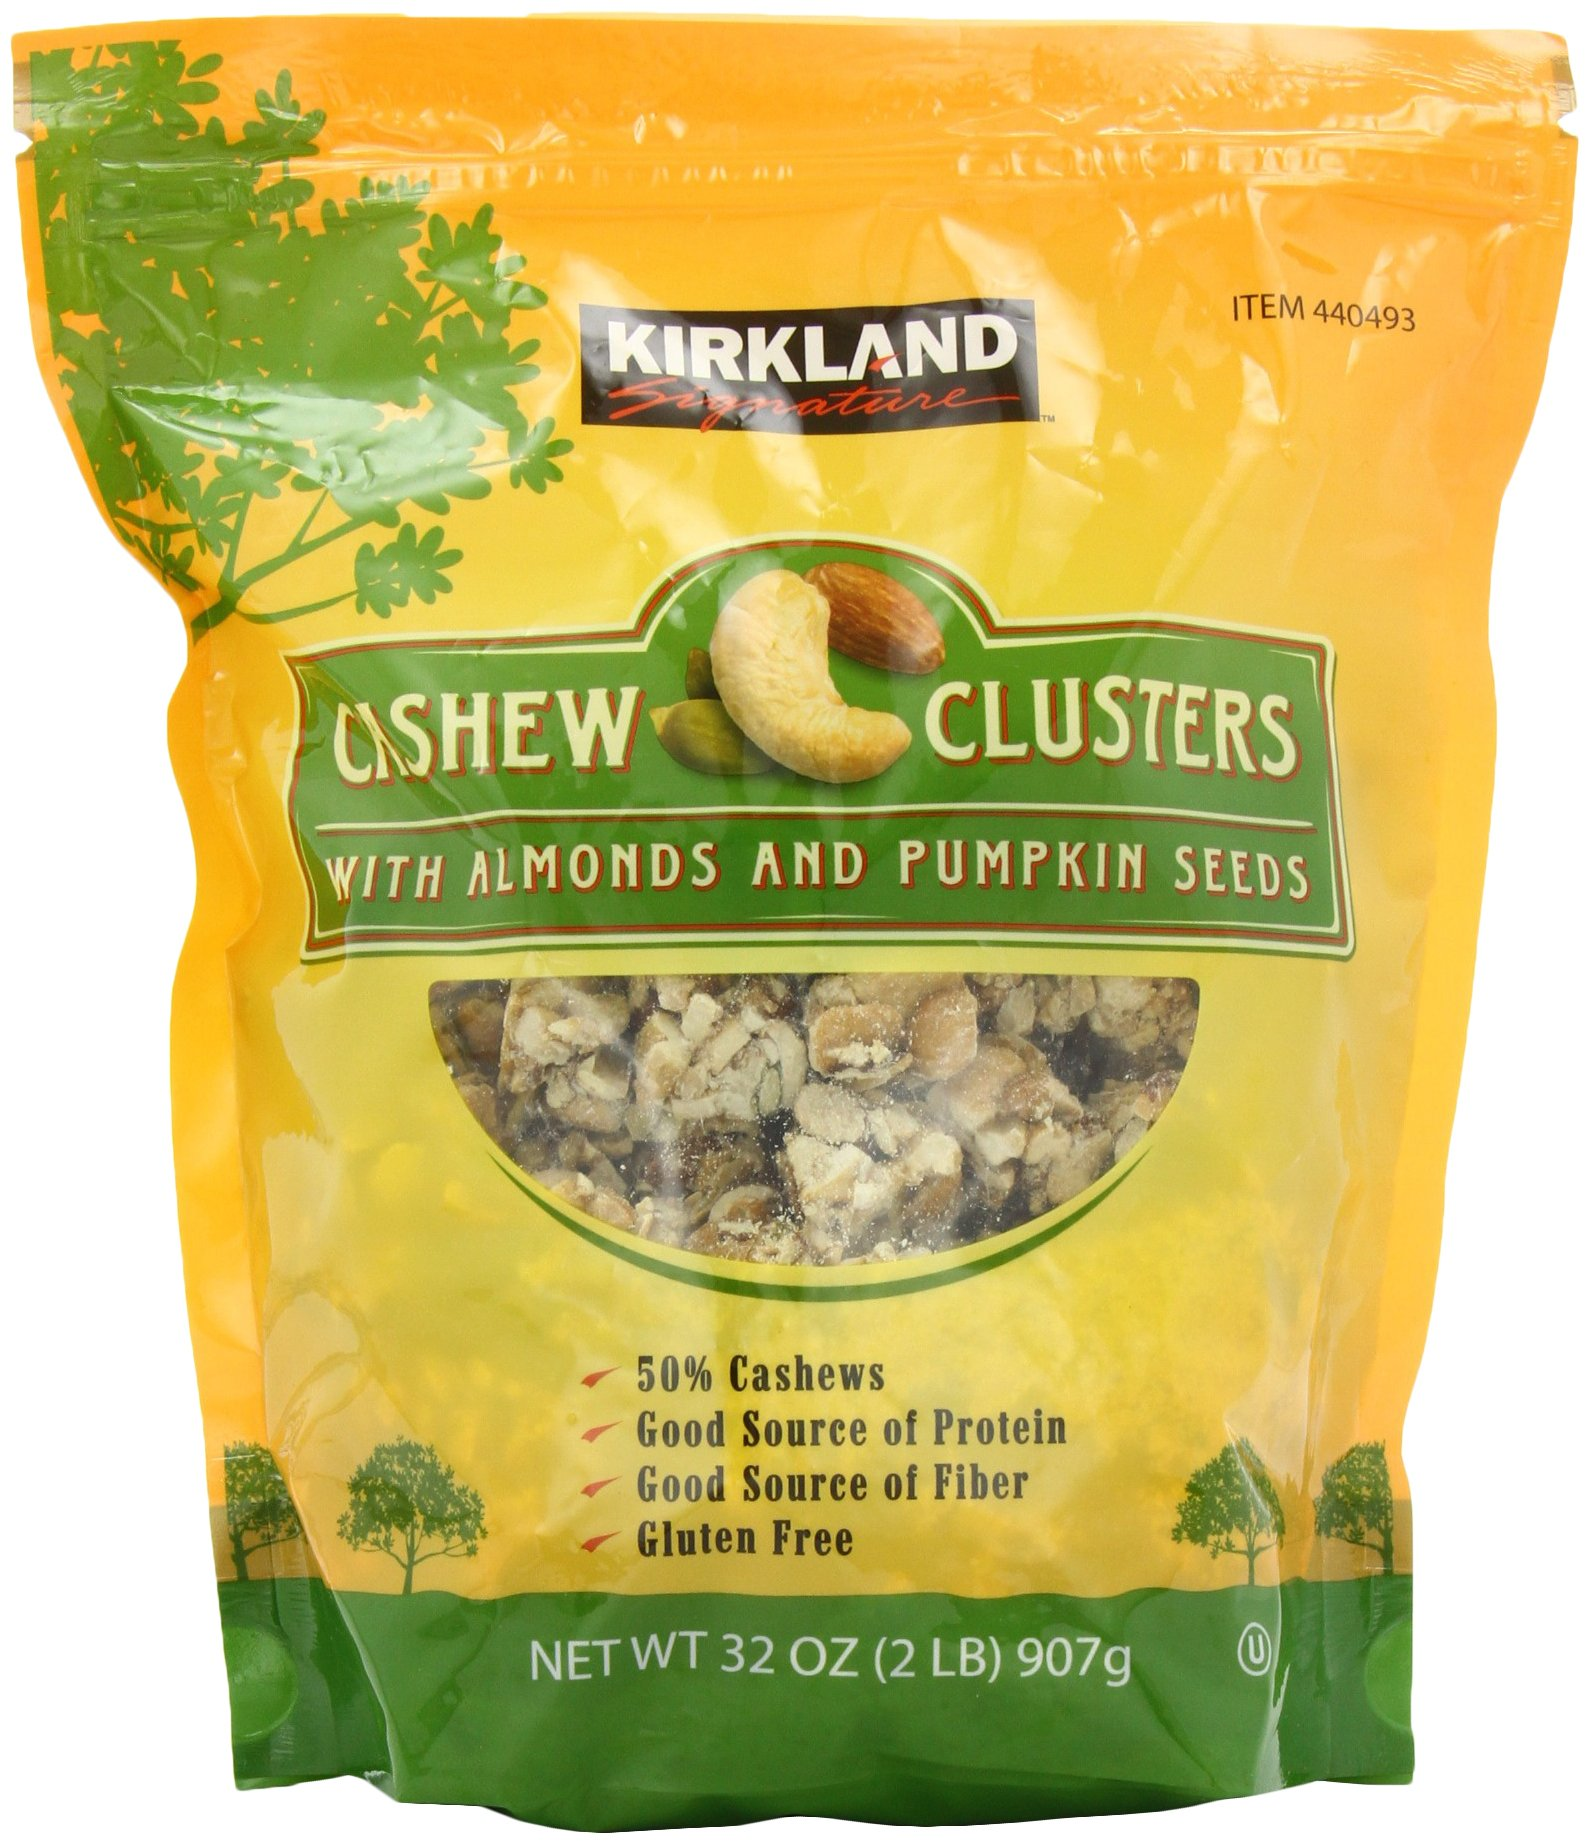 Signature's Cashew Cluster with Almonds and Pumpkin seeds, 32 Ounce by Kirkland Signature